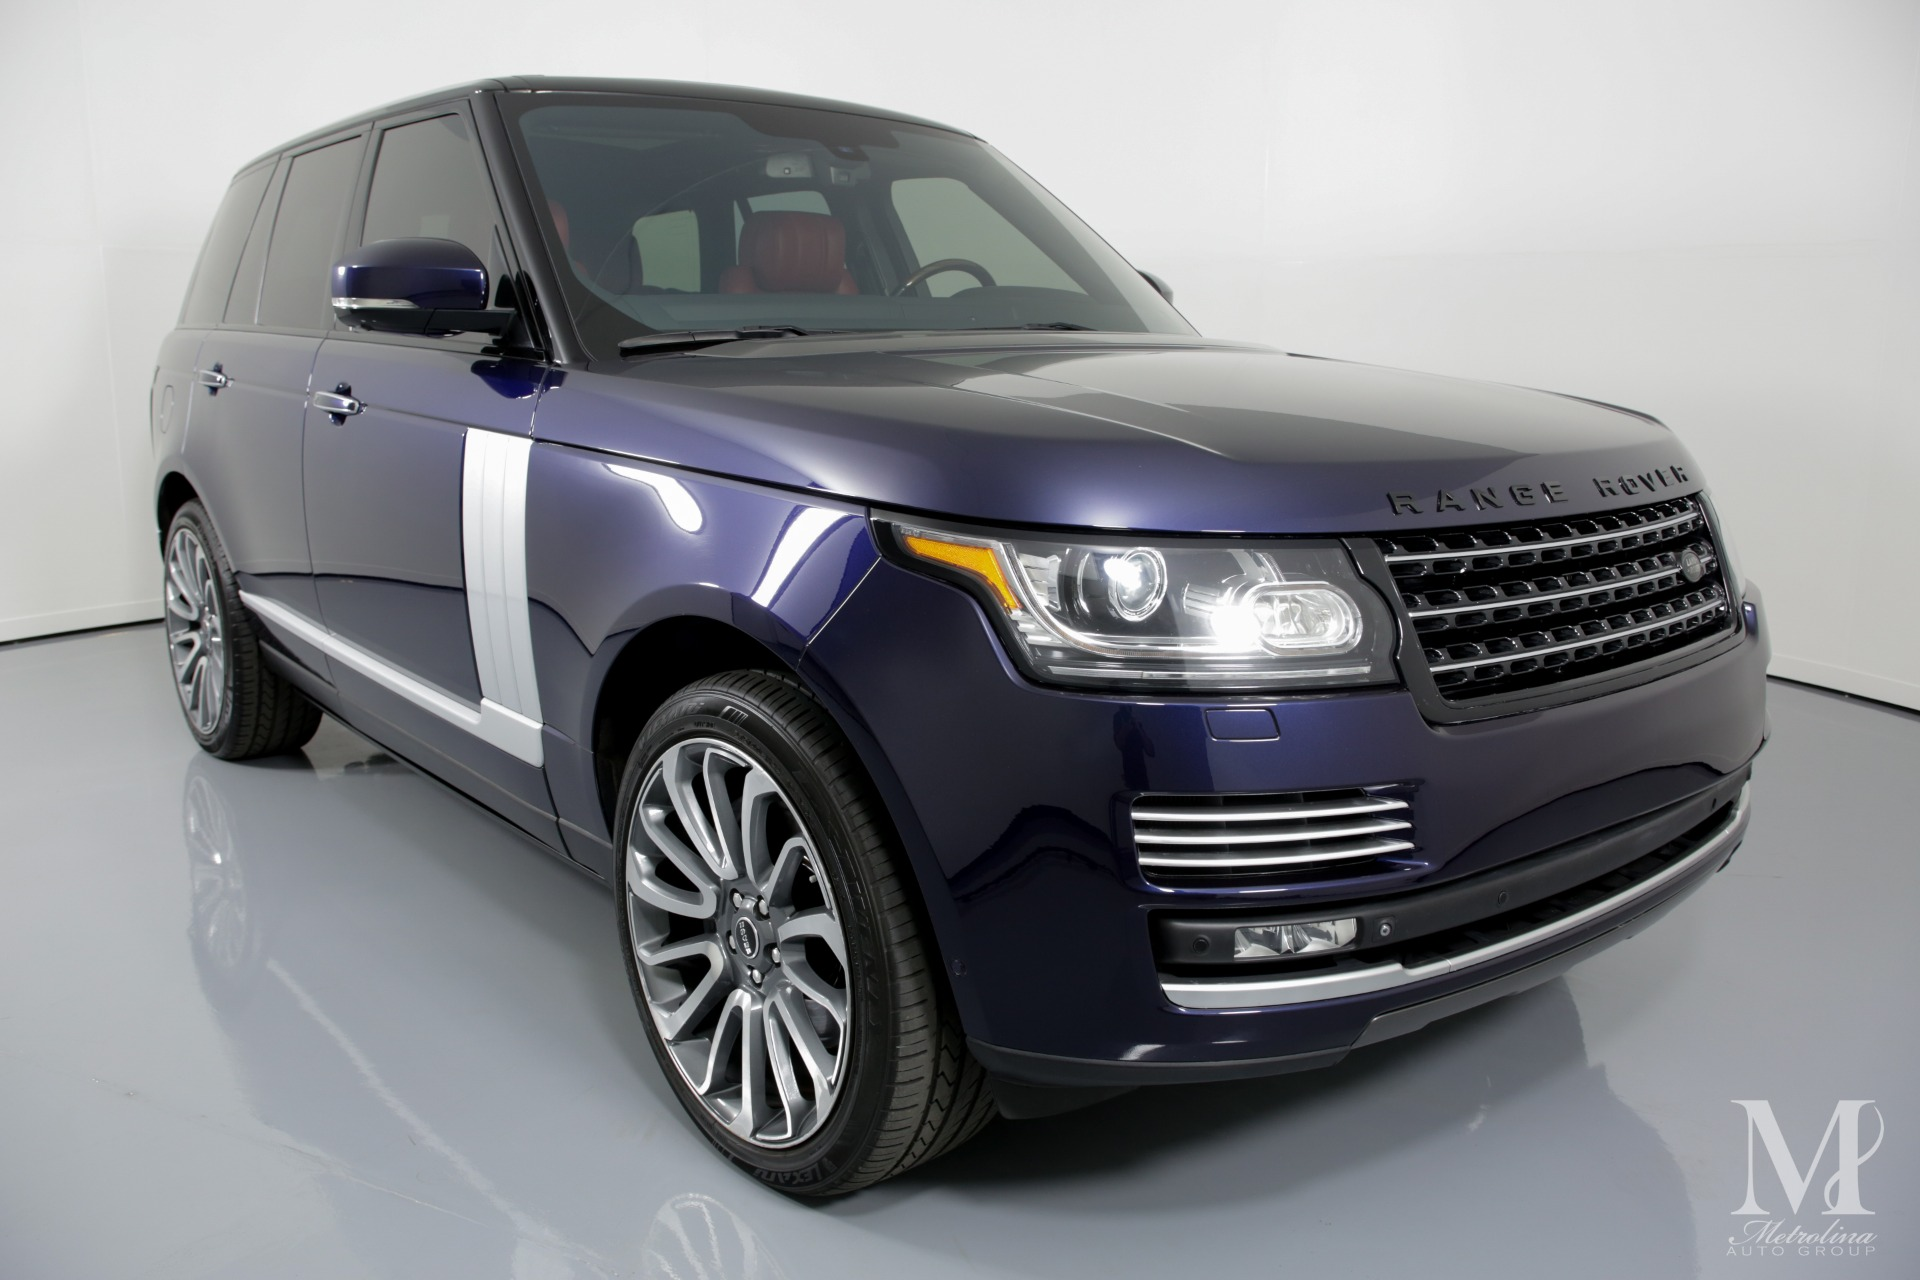 Used 2014 Land Rover Range Rover Autobiography 4x4 4dr SUV for sale Sold at Metrolina Auto Group in Charlotte NC 28217 - 2